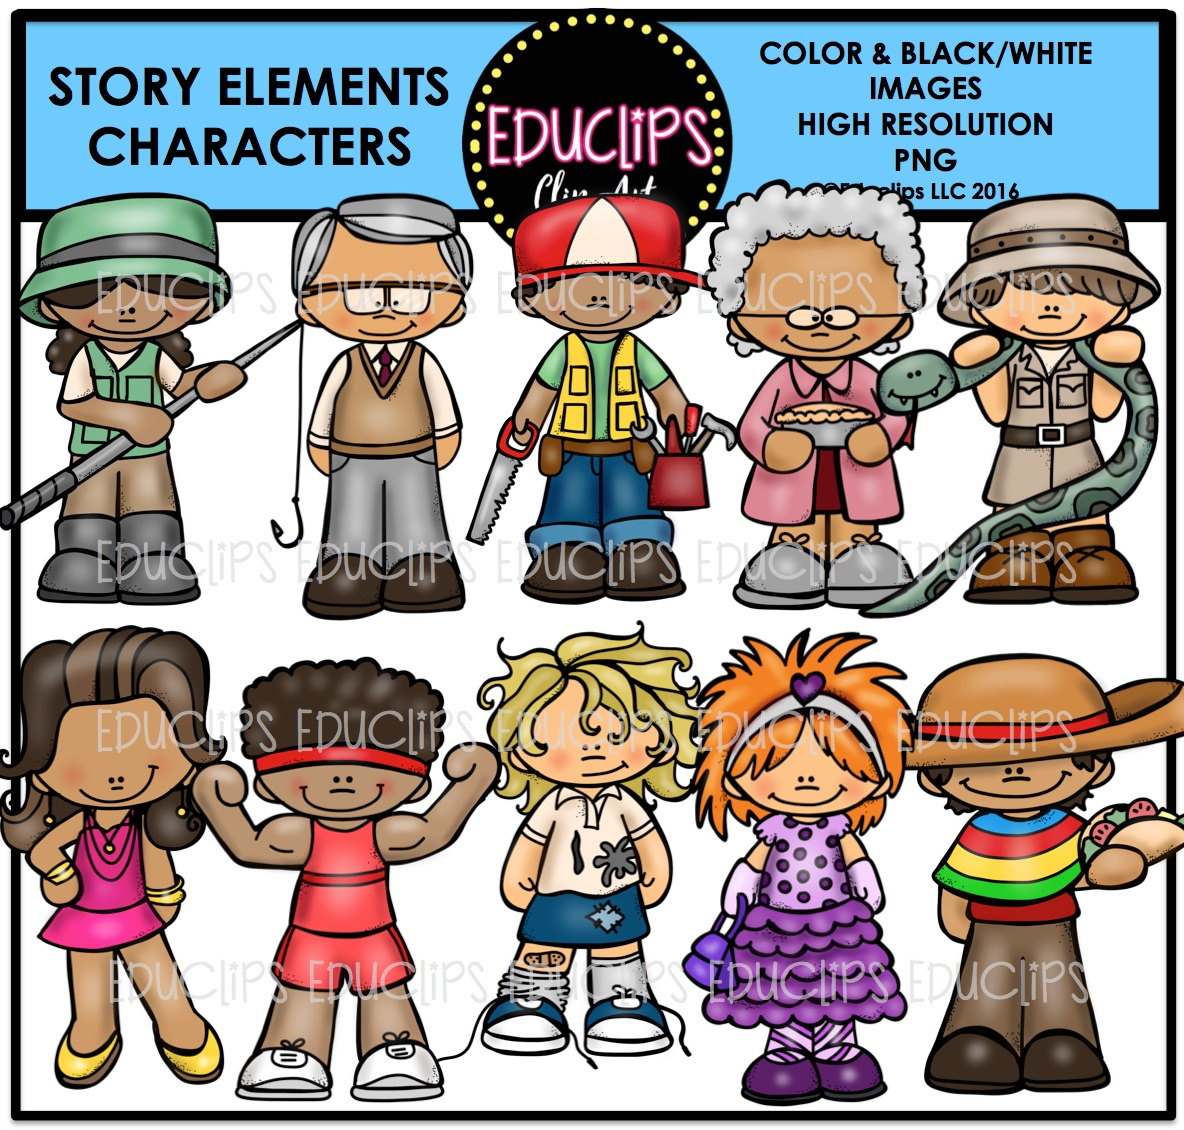 Elements clipart character story #4